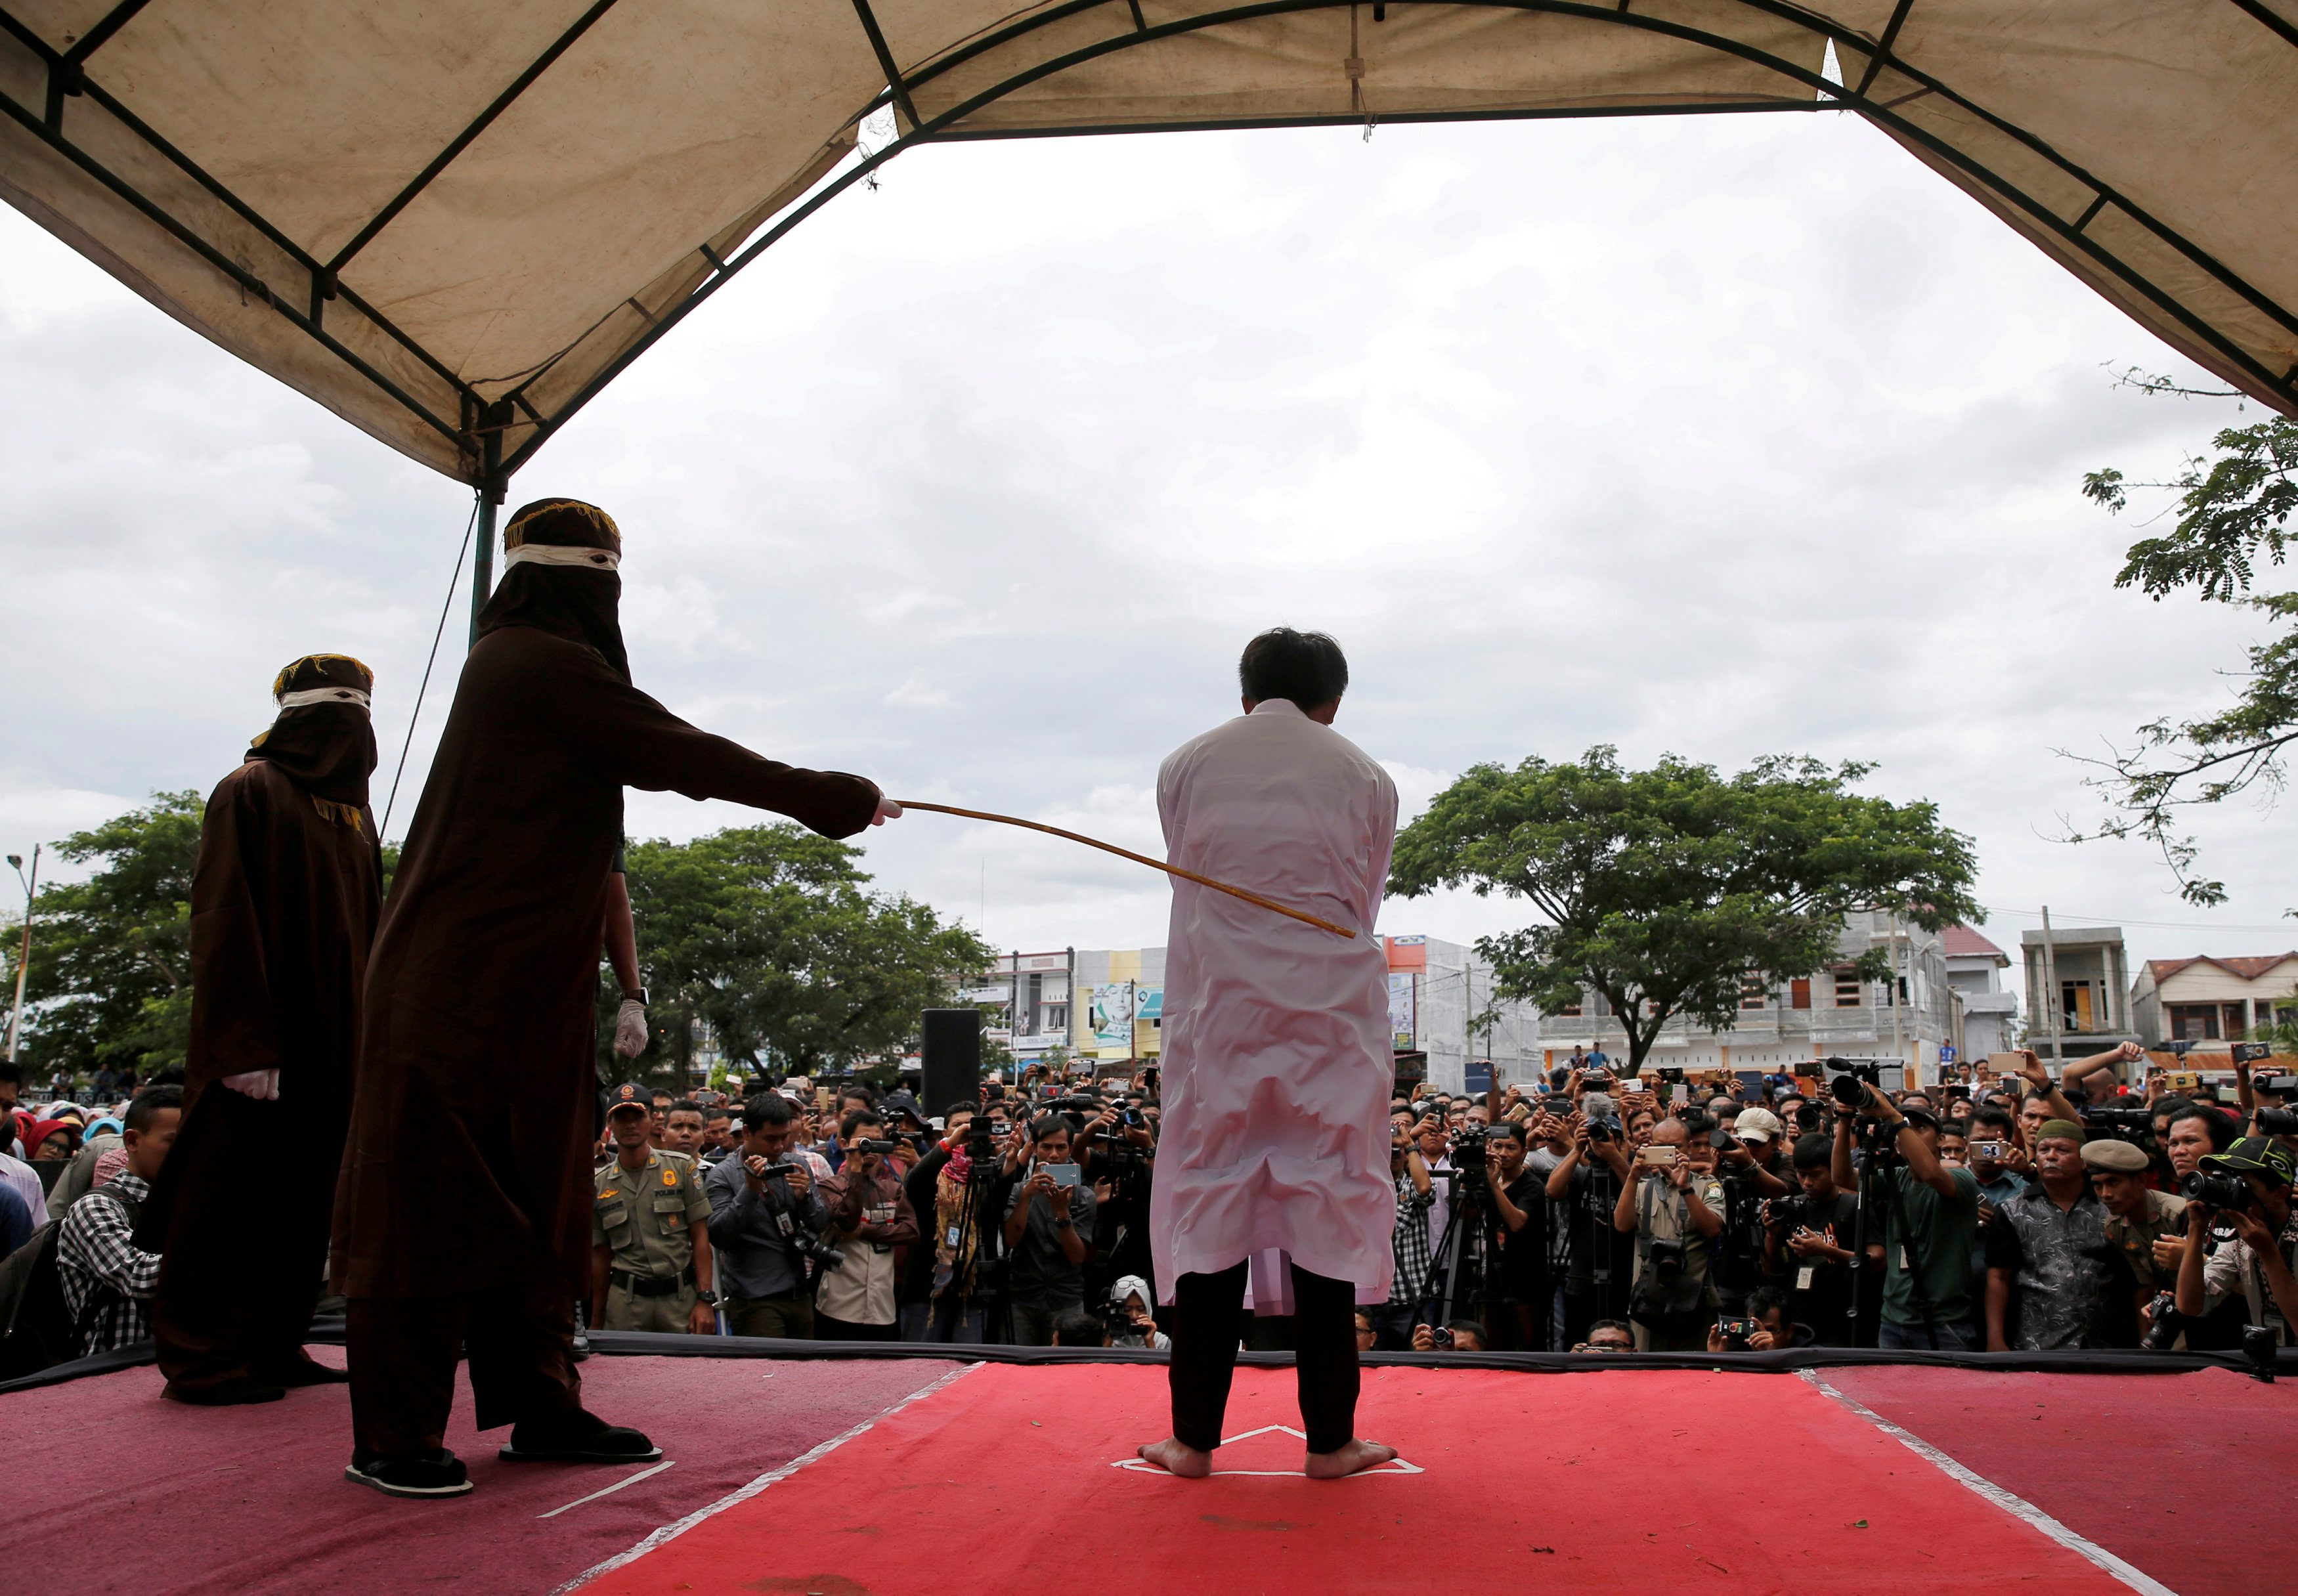 2018-04-12T080552Z_1973896491_RC1D576981B0_RTRMADP_3_INDONESIA-ACEH-CANING